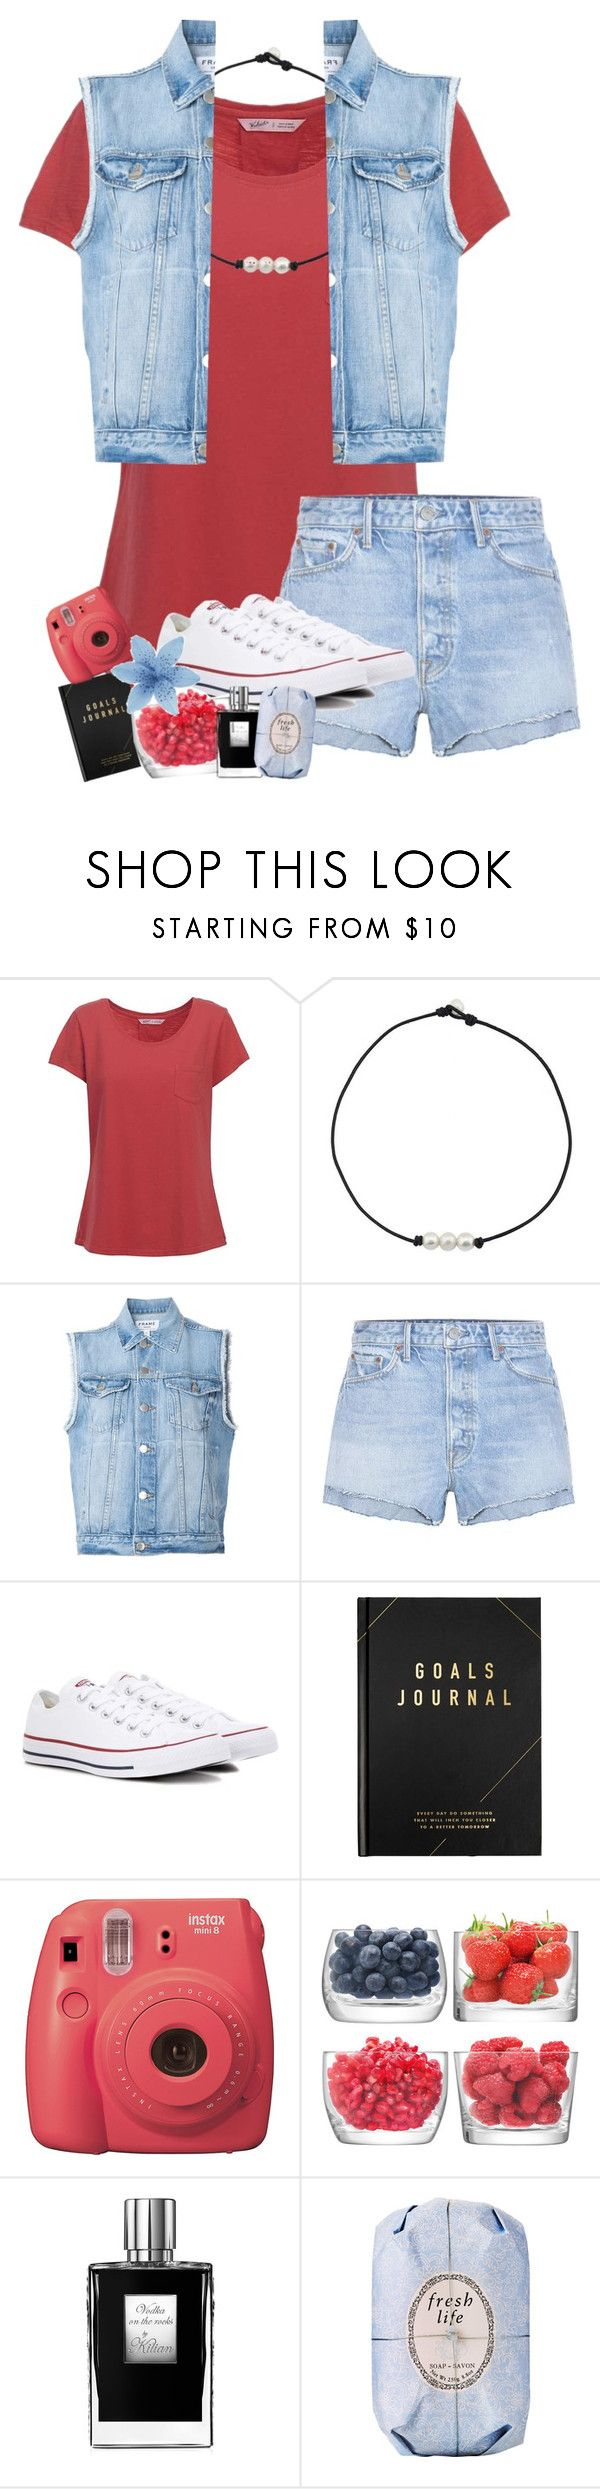 """it's a party in the usa 🇺🇸"" by yasmeen-s ❤ liked on Polyvore featuring Woolrich, Frame, GRLFRND, Converse, kikki.K, Fujifilm, LSA International, Kilian and Fresh"